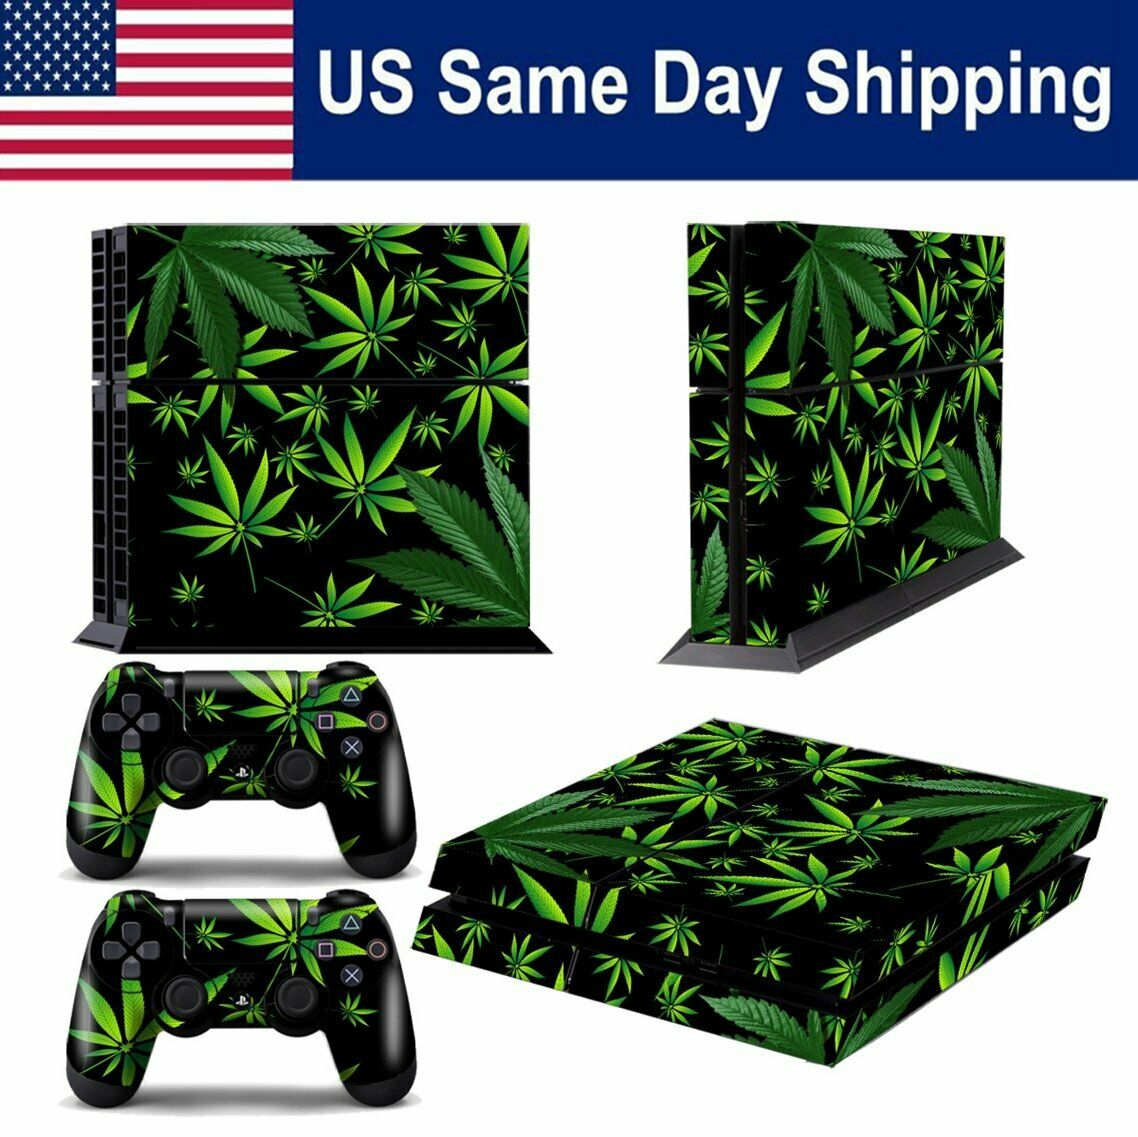 Decal Skin Sticker for Playstation 4 PS4 Console & Controller Decal Weeds Black 1 of 1Only 3 available ...